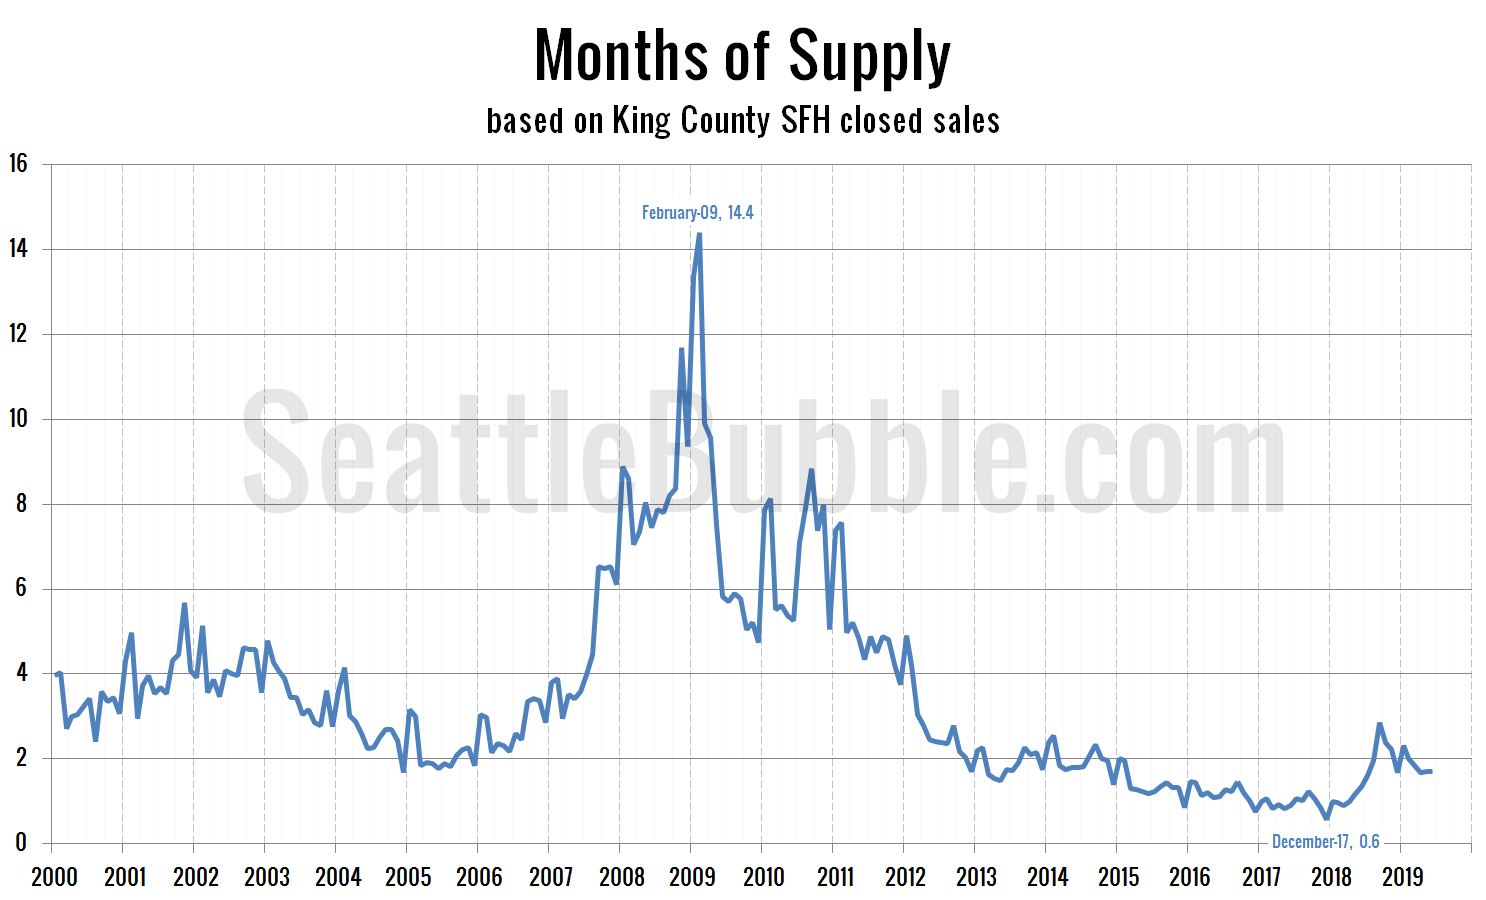 King County SFH Months of Supply